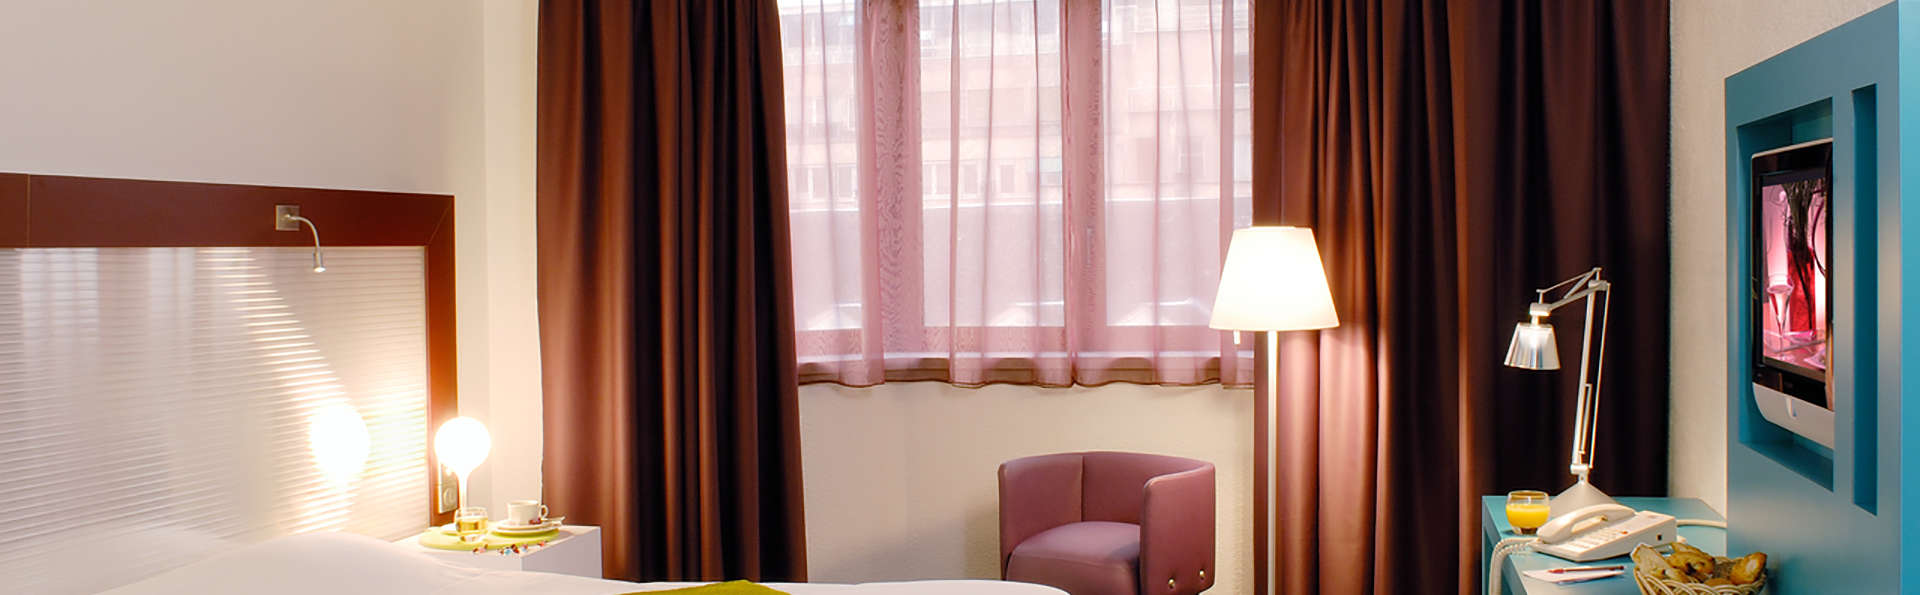 Mercure Strasbourg Centre - Edit_Room9.jpg